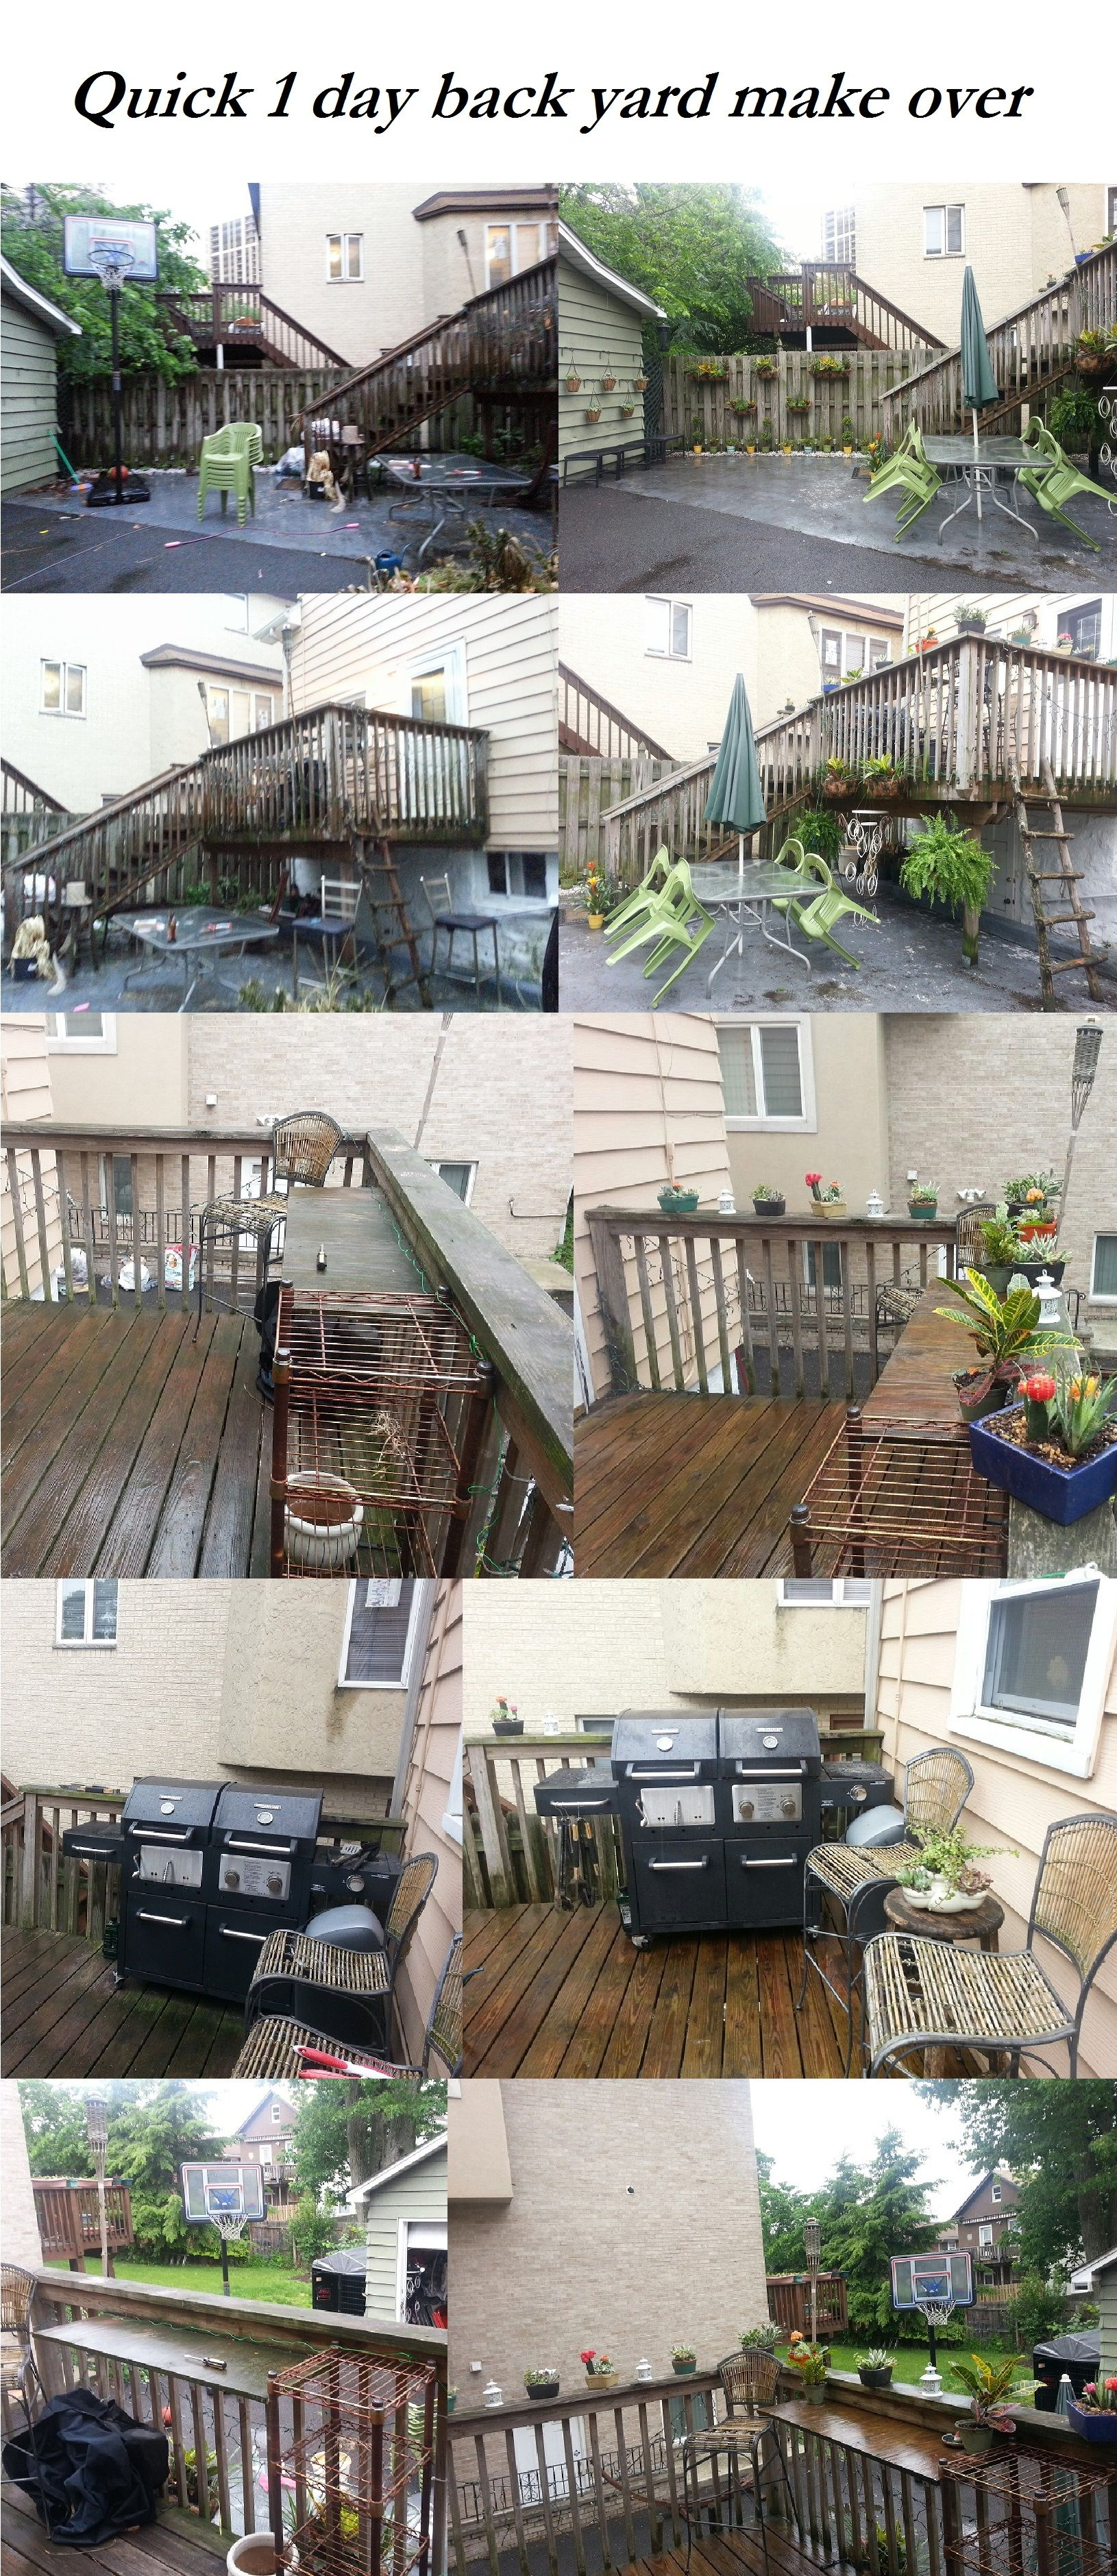 1 day back yard make over on a small budget